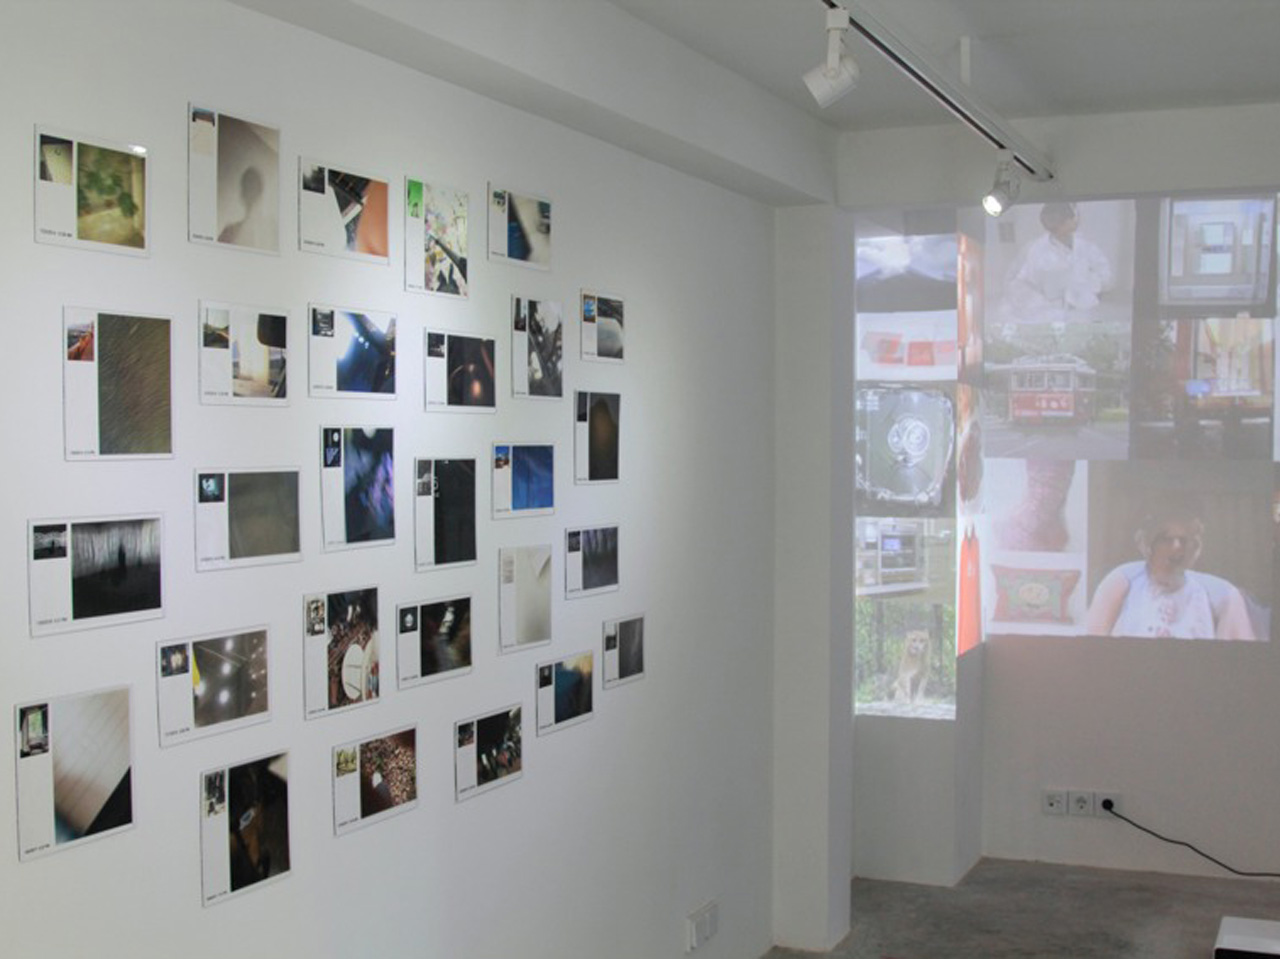 Even in Arcadia there am I-Installation Views